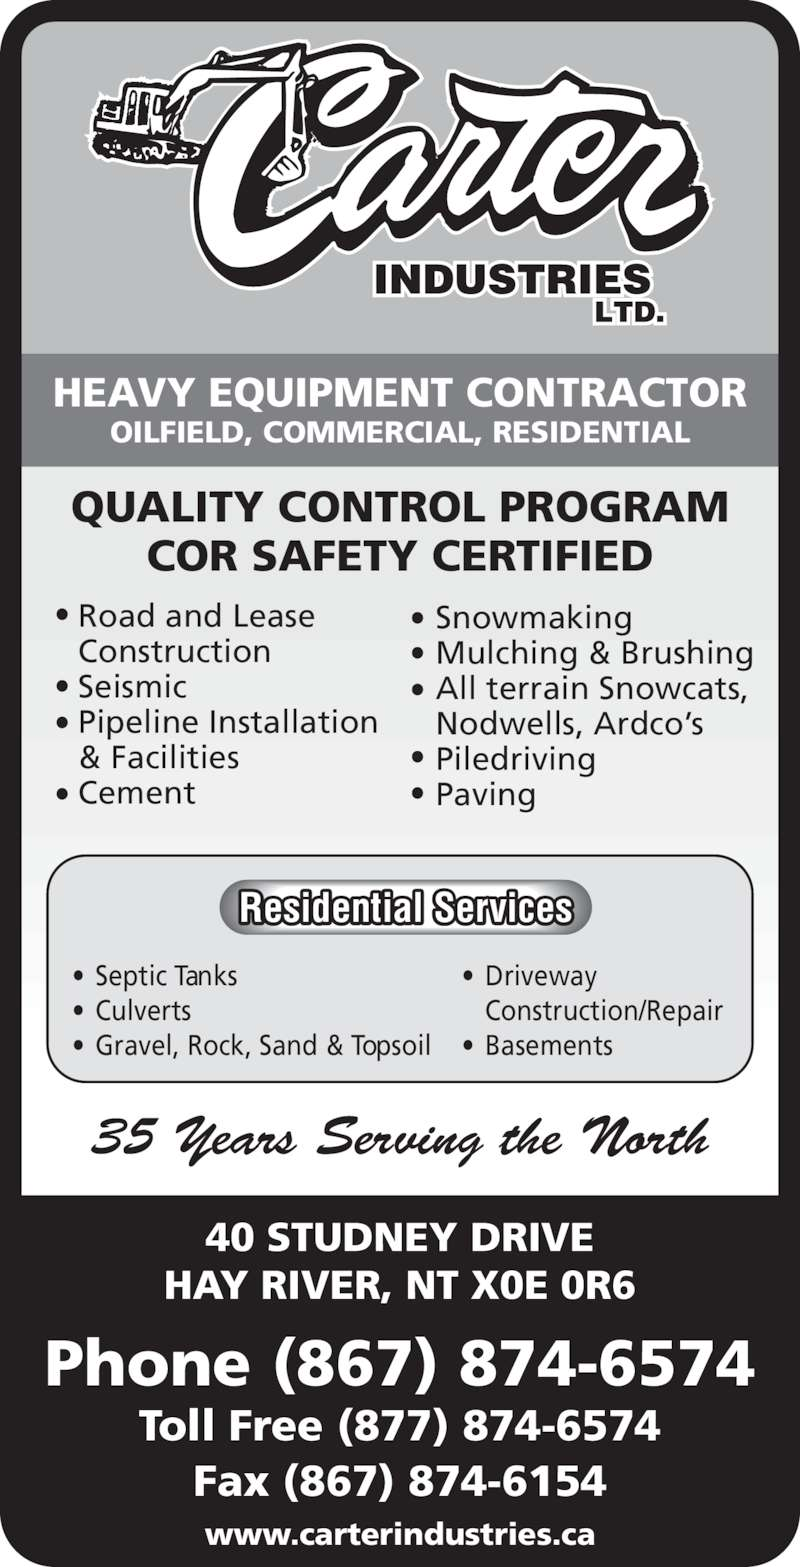 Carter Industries Ltd (867-874-6574) - Display Ad - 35 Years Serving the North Road and Lease HEAVY EQUIPMENT CONTRACTOR OILFIELD, COMMERCIAL, RESIDENTIAL QUALITY CONTROL PROGRAM COR SAFETY CERTIFIED • Septic Tanks • Culverts • Gravel, Rock, Sand & Topsoil • Driveway  Construction/Repair • Basements Residential Services Construction Seismic Pipeline Installation & Facilities Cement Snowmaking Mulching & Brushing All terrain Snowcats, Nodwells, Ardco's Piledriving Paving 40 STUDNEY DRIVE HAY RIVER, NT X0E 0R6 Phone (867) 874-6574 Toll Free (877) 874-6574 Fax (867) 874-6154 www.carterindustries.ca